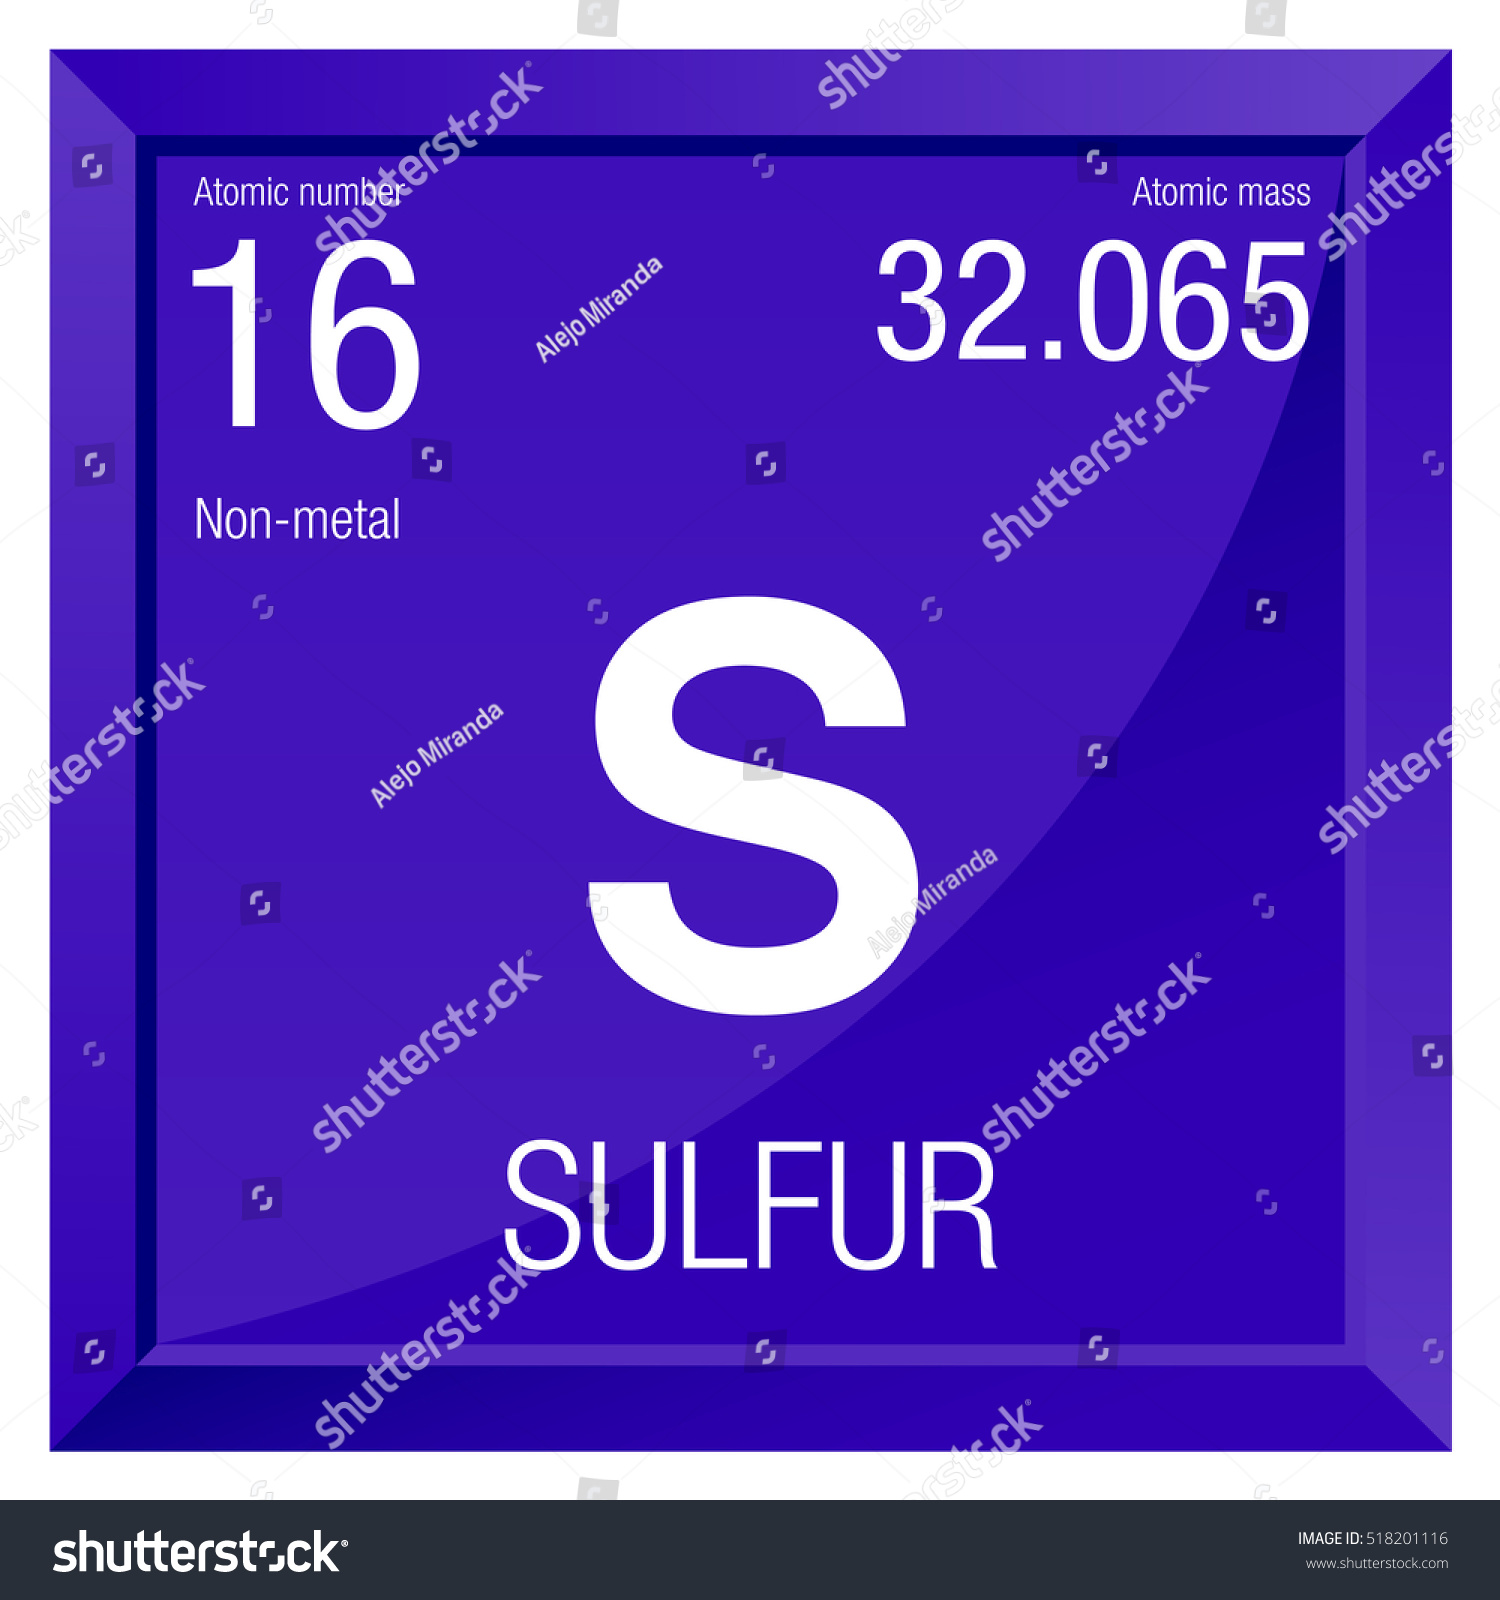 Sulfur symbol element number 16 periodic stock vector 518201116 sulfur symbol element number 16 of the periodic table of the elements chemistry buycottarizona Image collections